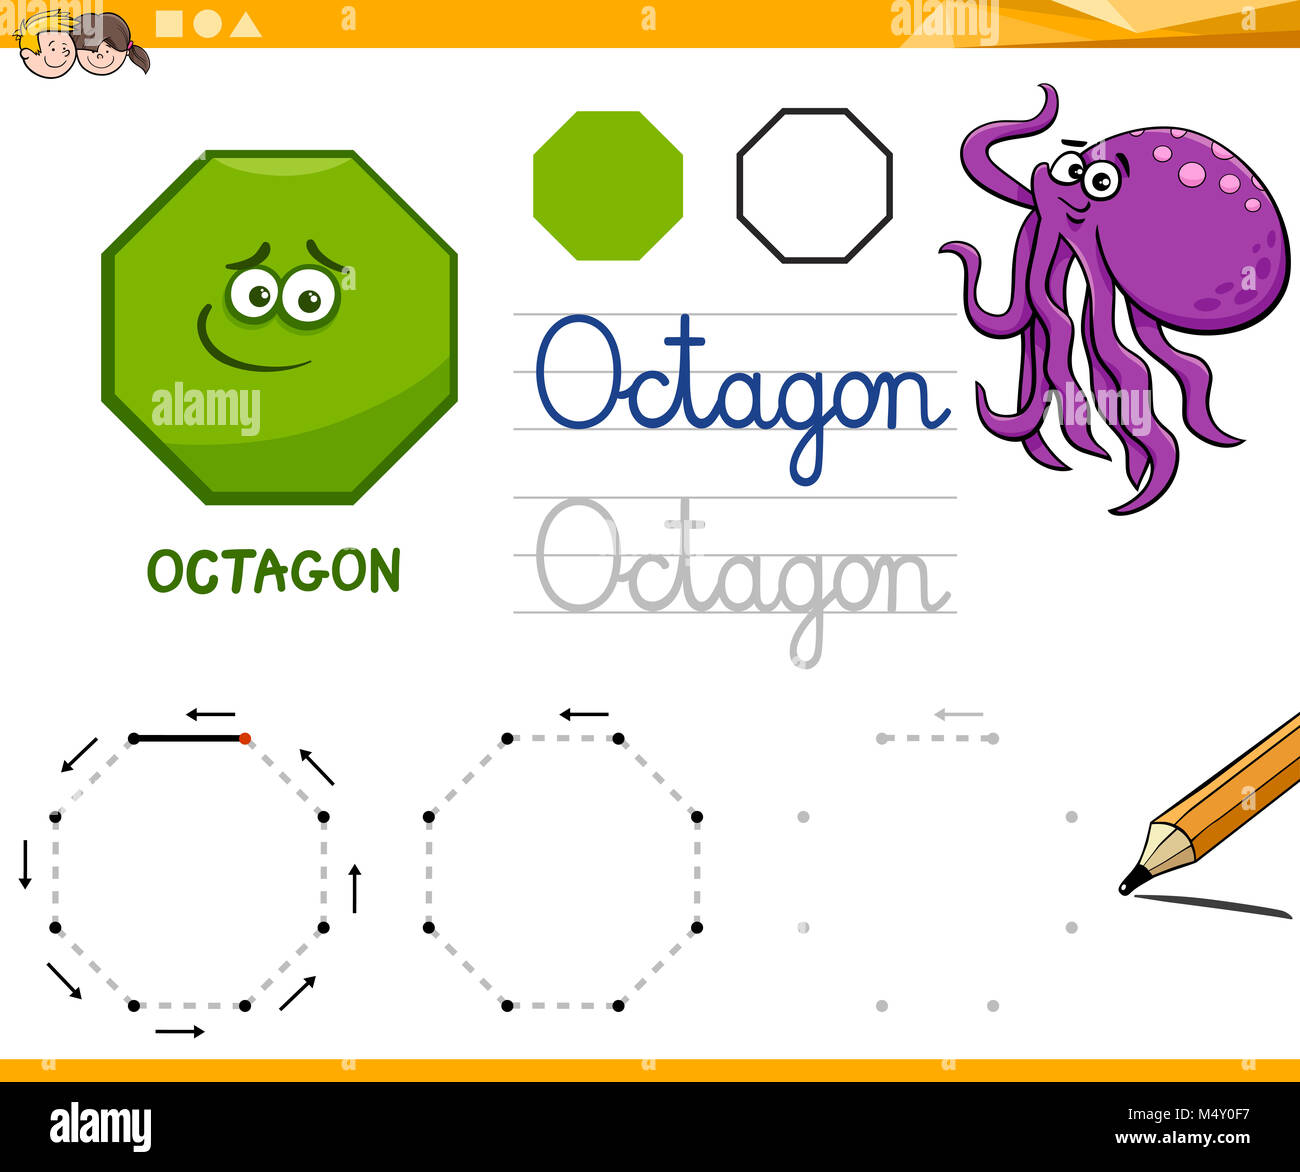 Octagon Shapes Stock Photos Amp Octagon Shapes Stock Images